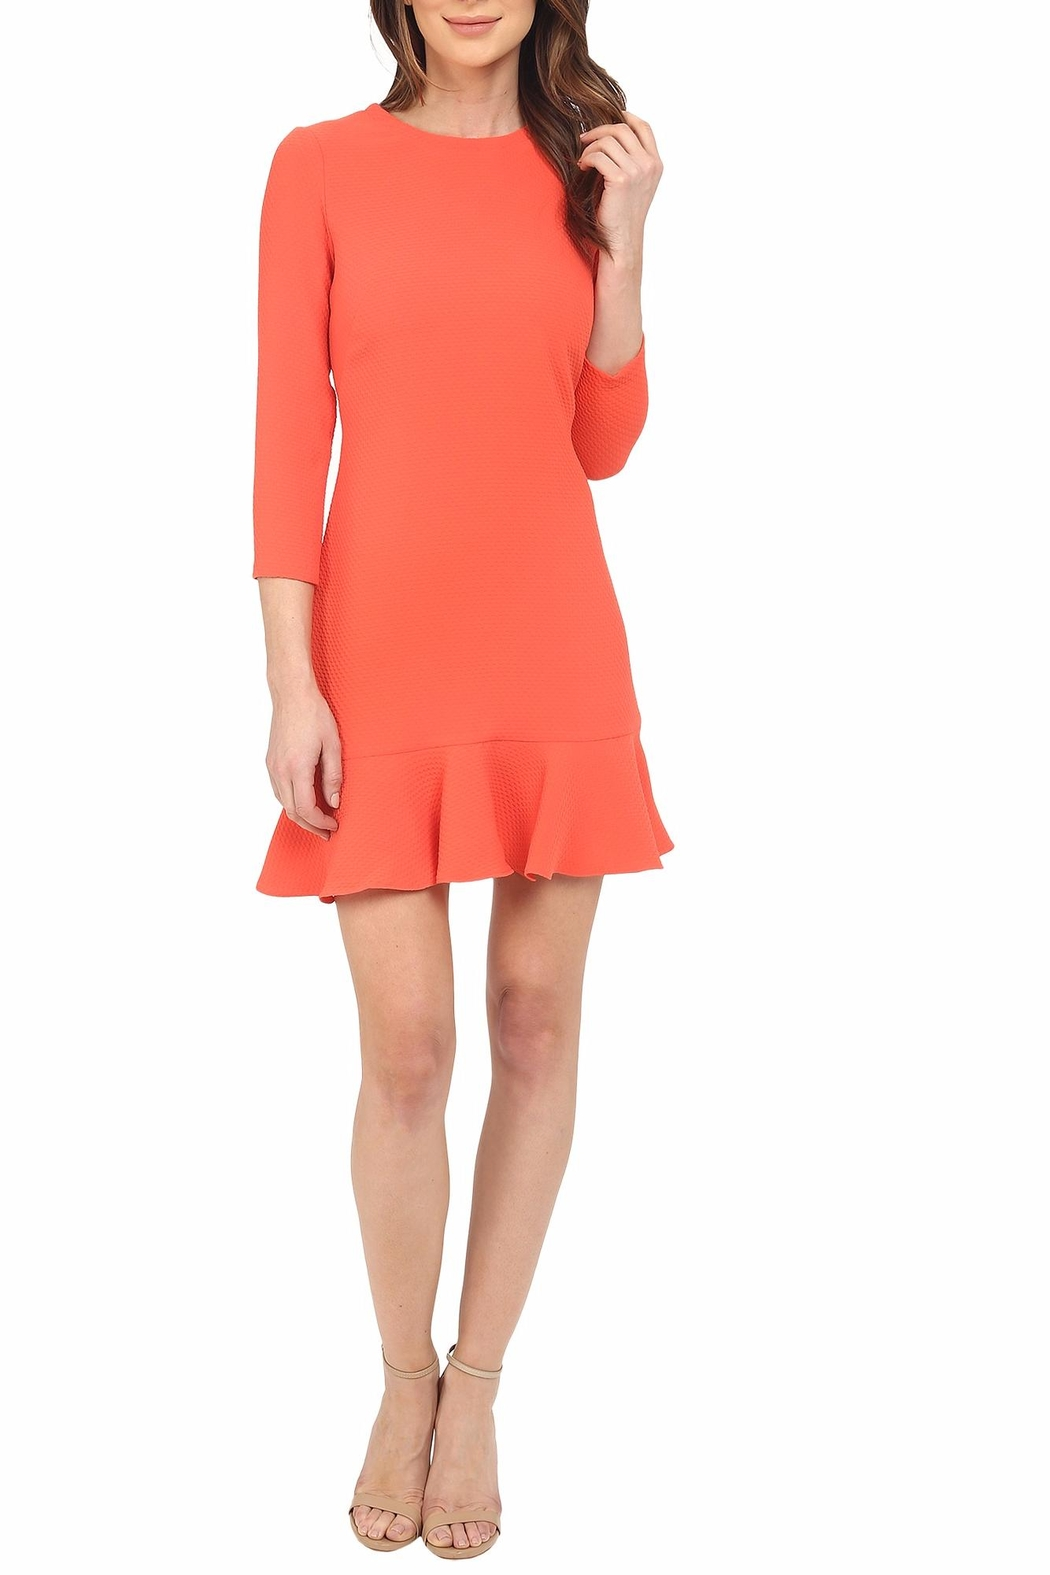 Shoshanna Tia Coral Dress - Front Cropped Image